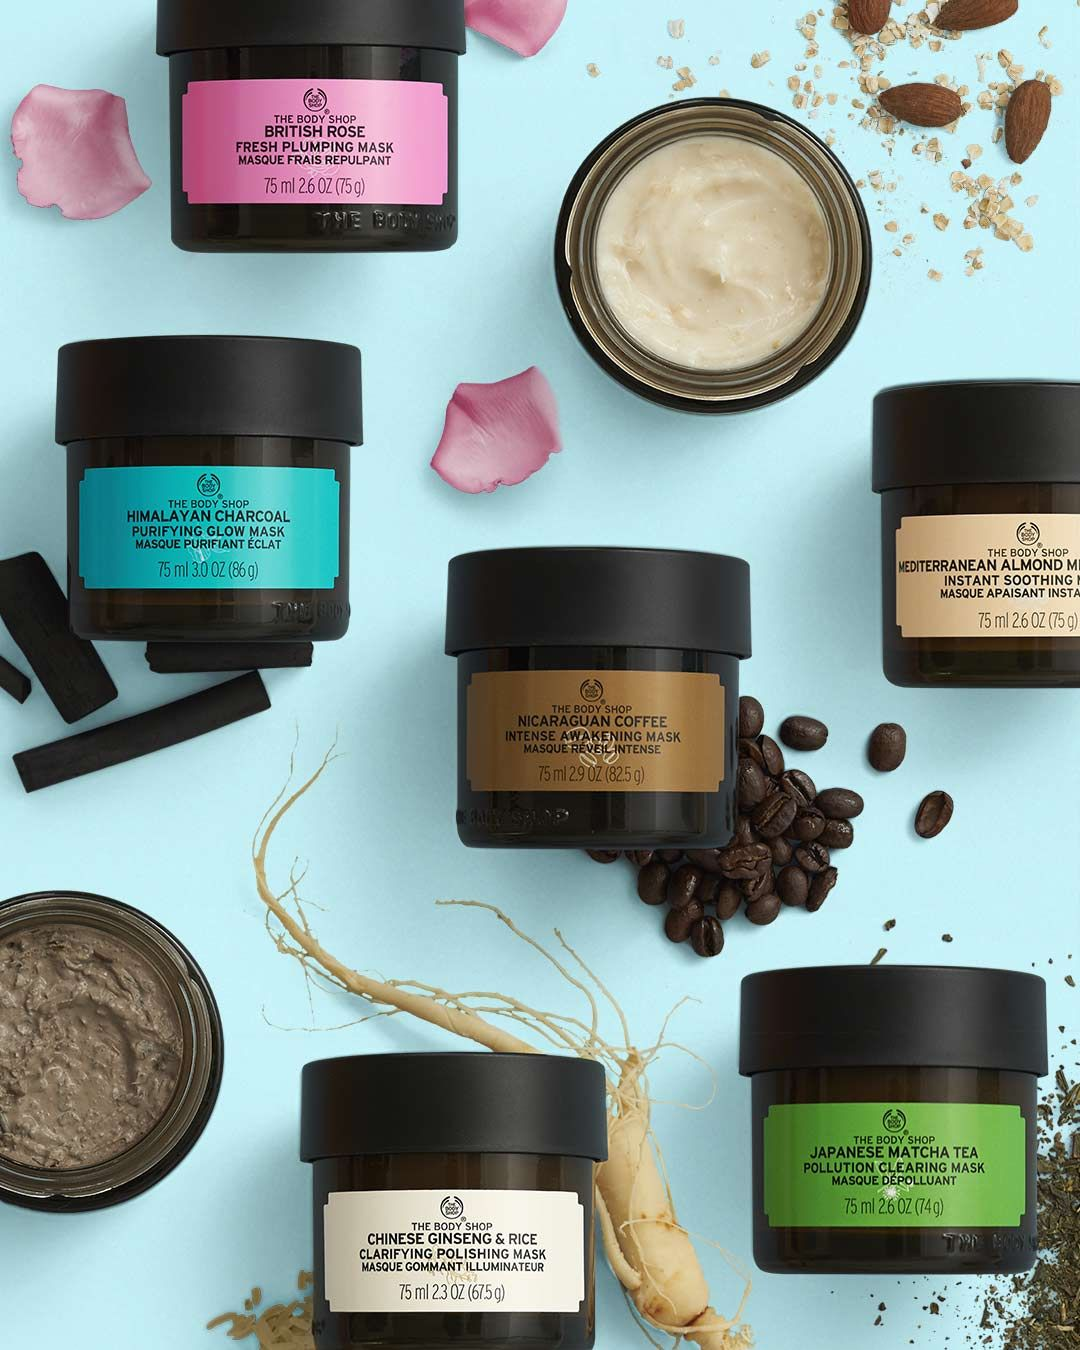 Nicaraguan Coffee Intense Awakening Mask In 2020 Body Shop Skincare The Body Shop Body Shop At Home